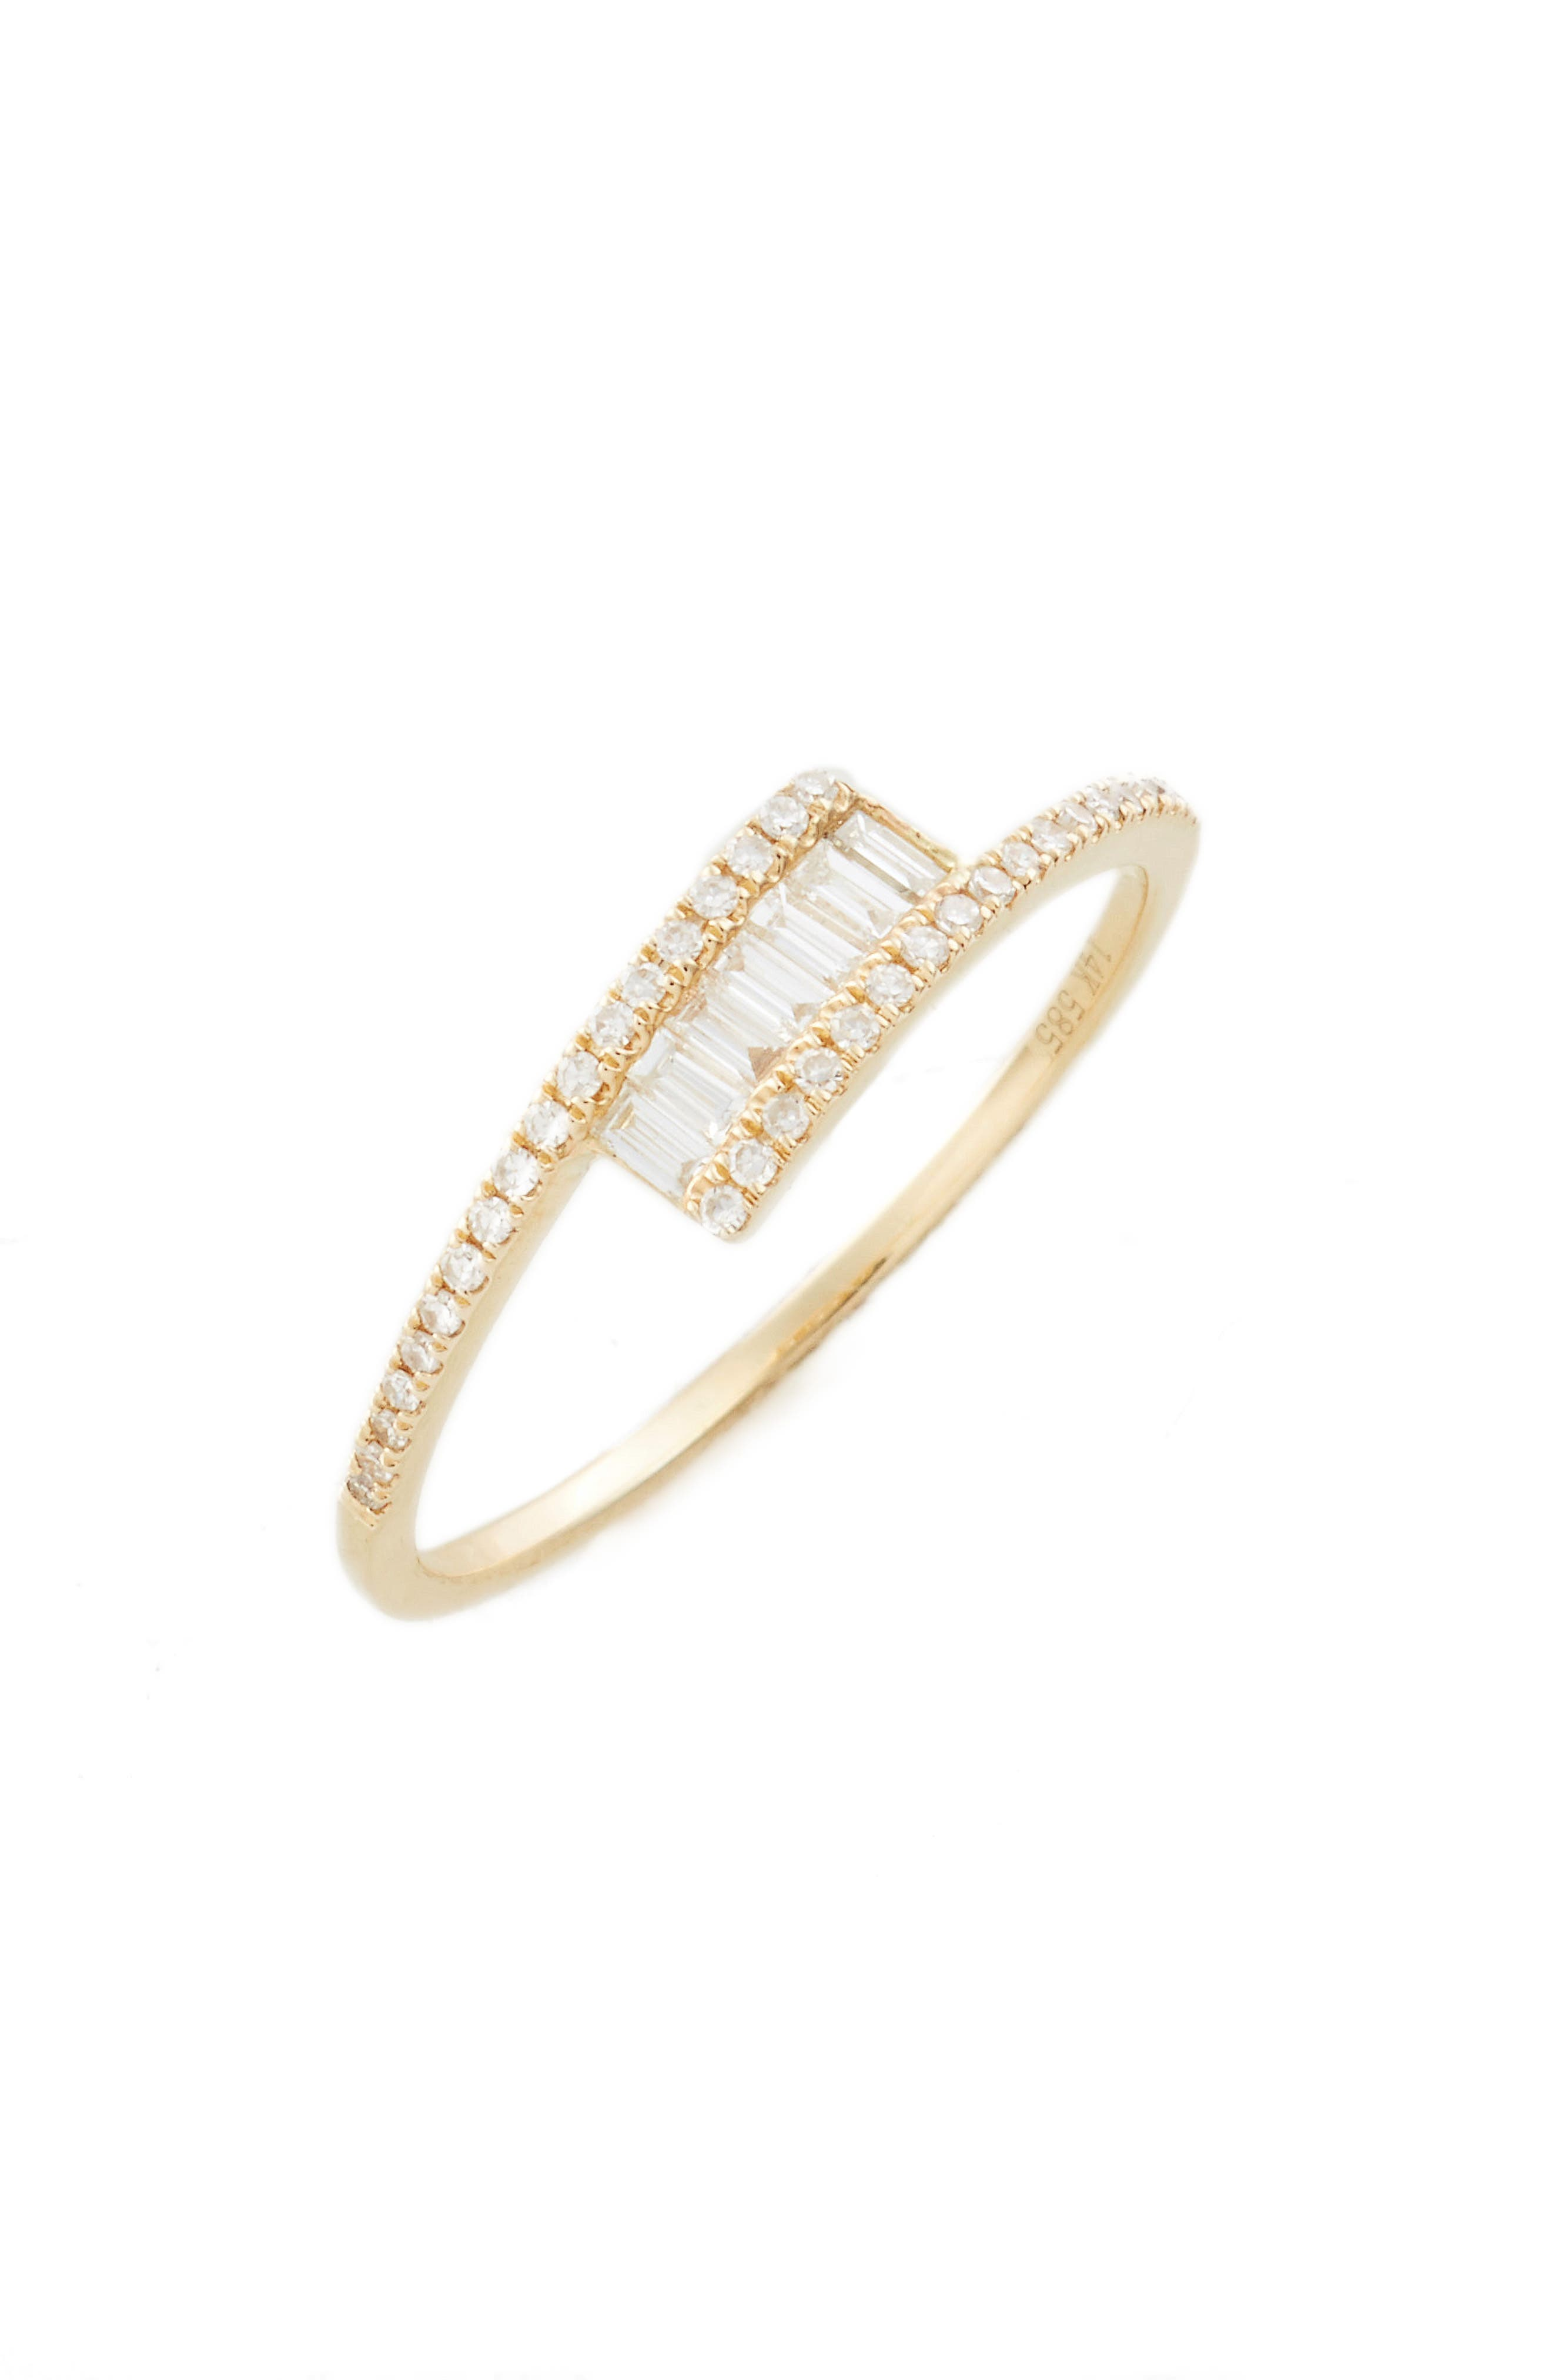 Baguette Diamond Ring,                             Main thumbnail 1, color,                             YELLOW GOLD